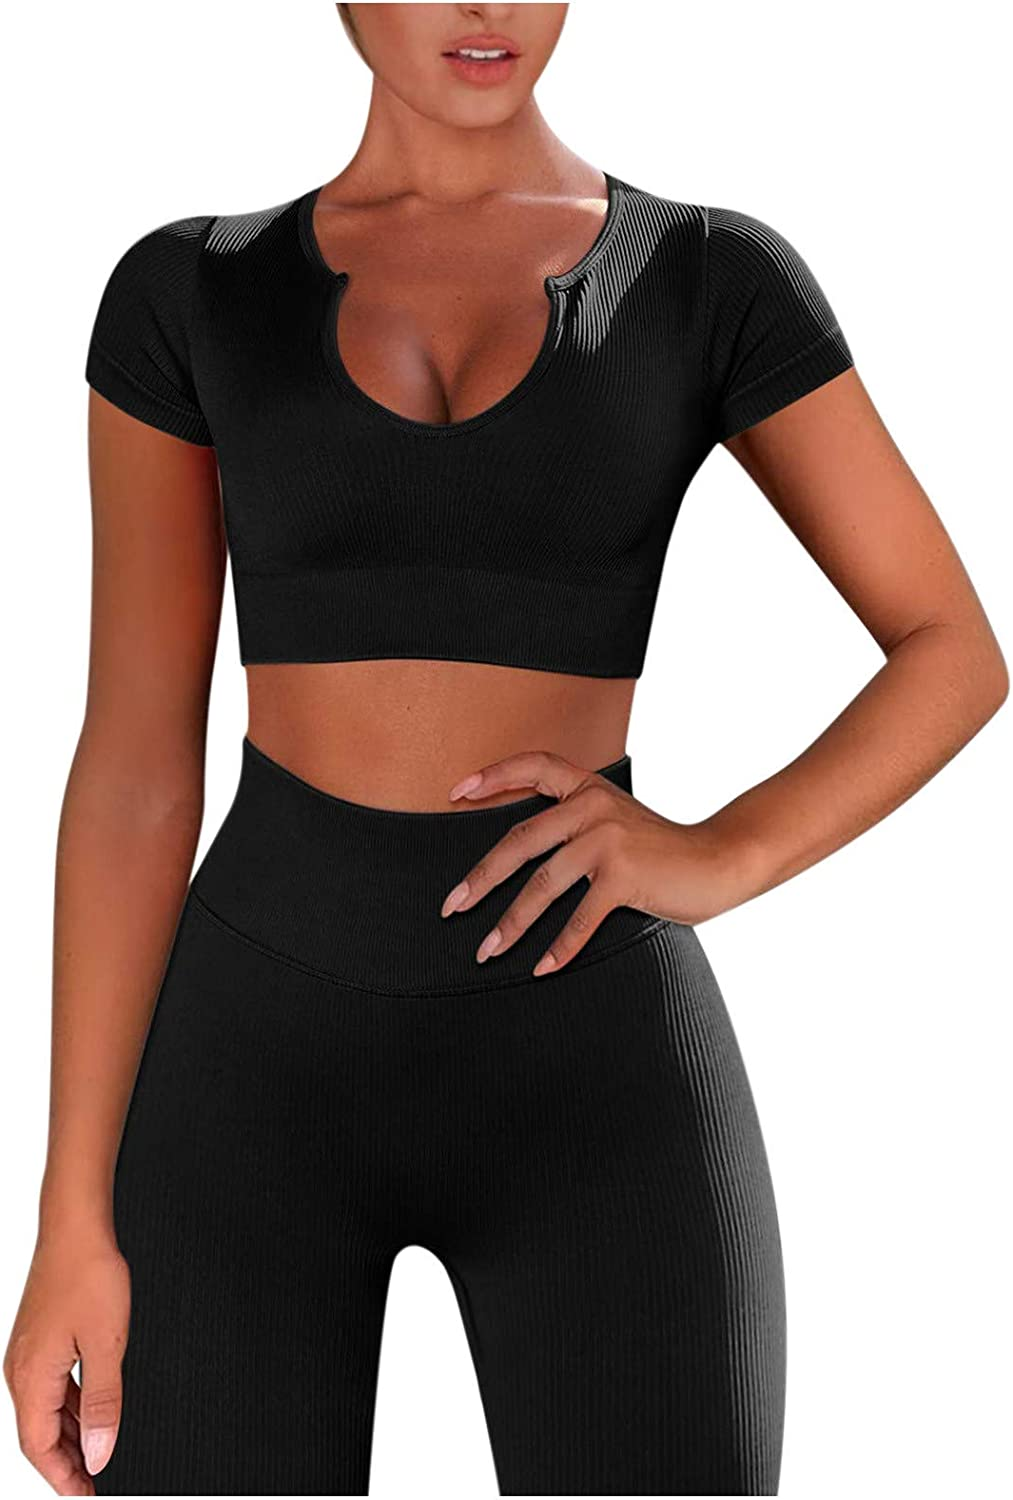 LauVery Workout Sets for Women, 2 Piece Seamless Ribbed Crop Tank High Waist Shorts Yoga Outfits